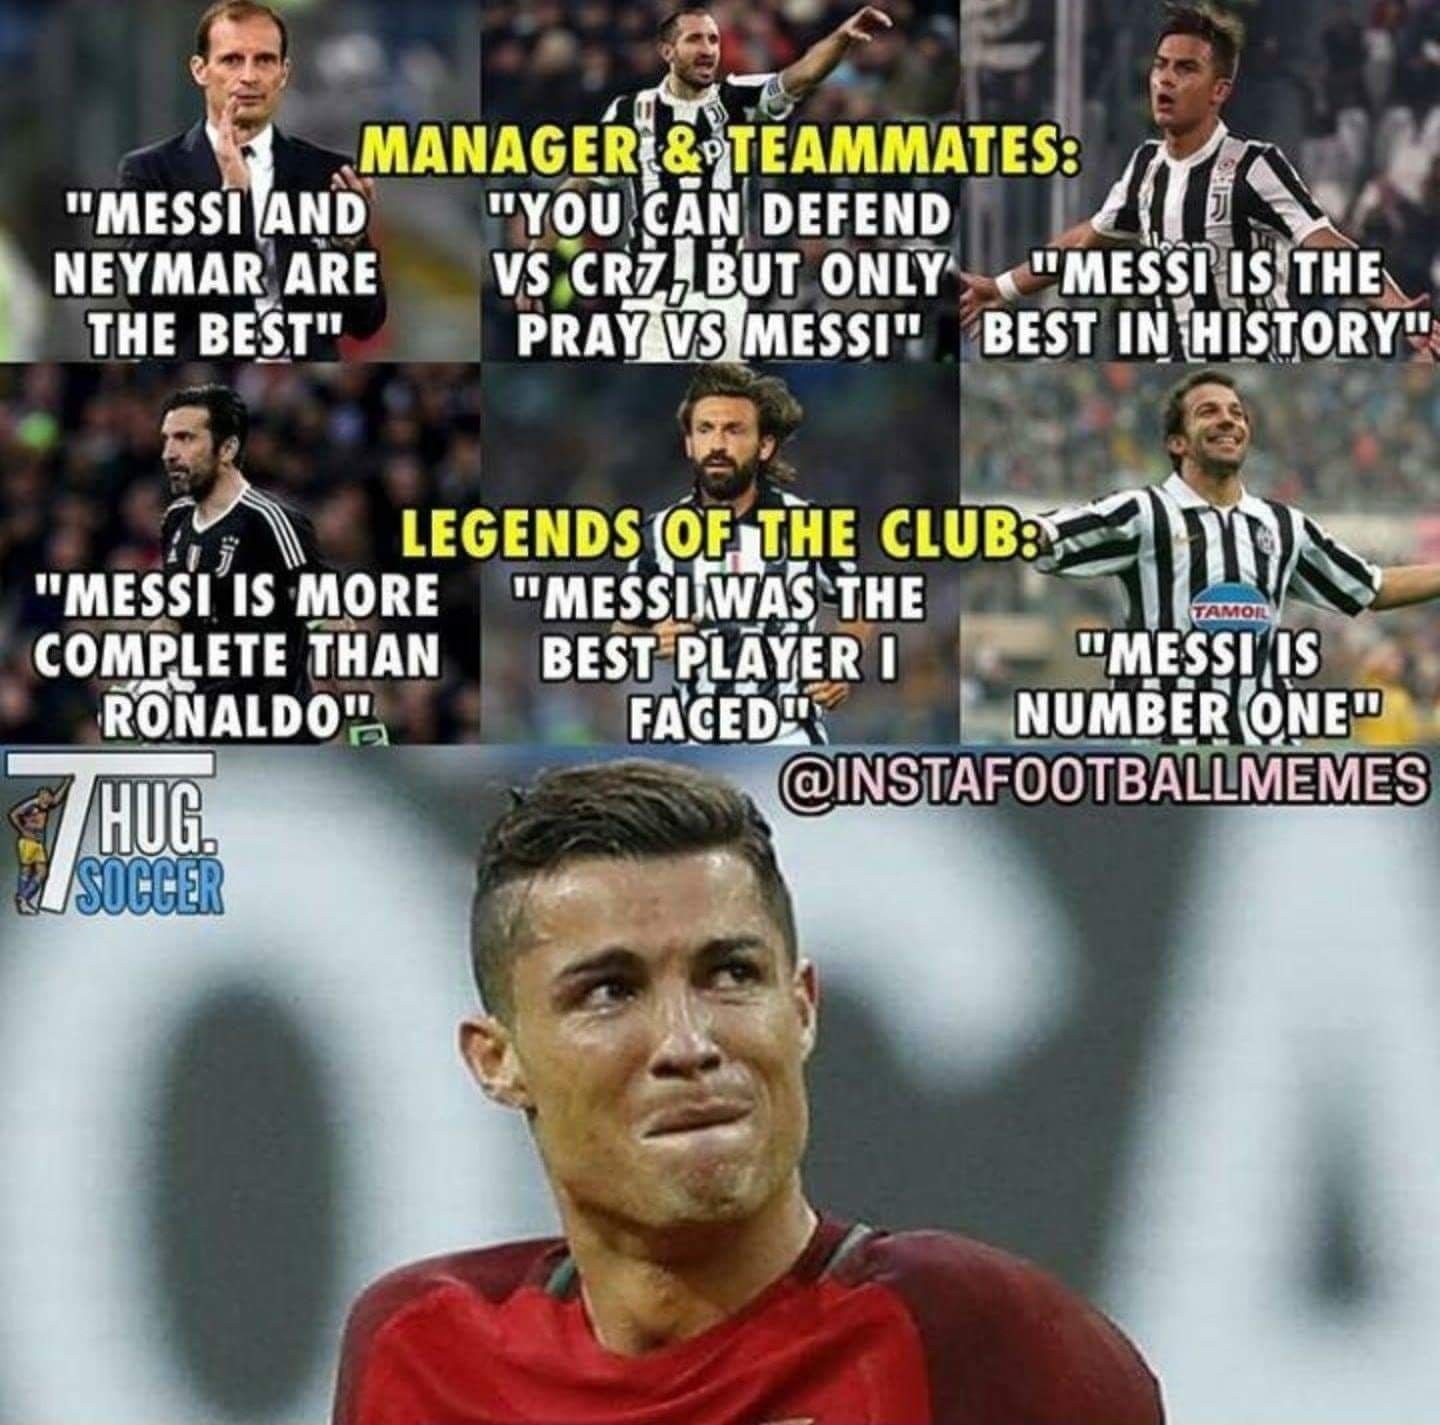 Pin by MANAS MESSI on Messi Soccer funny, Soccer memes